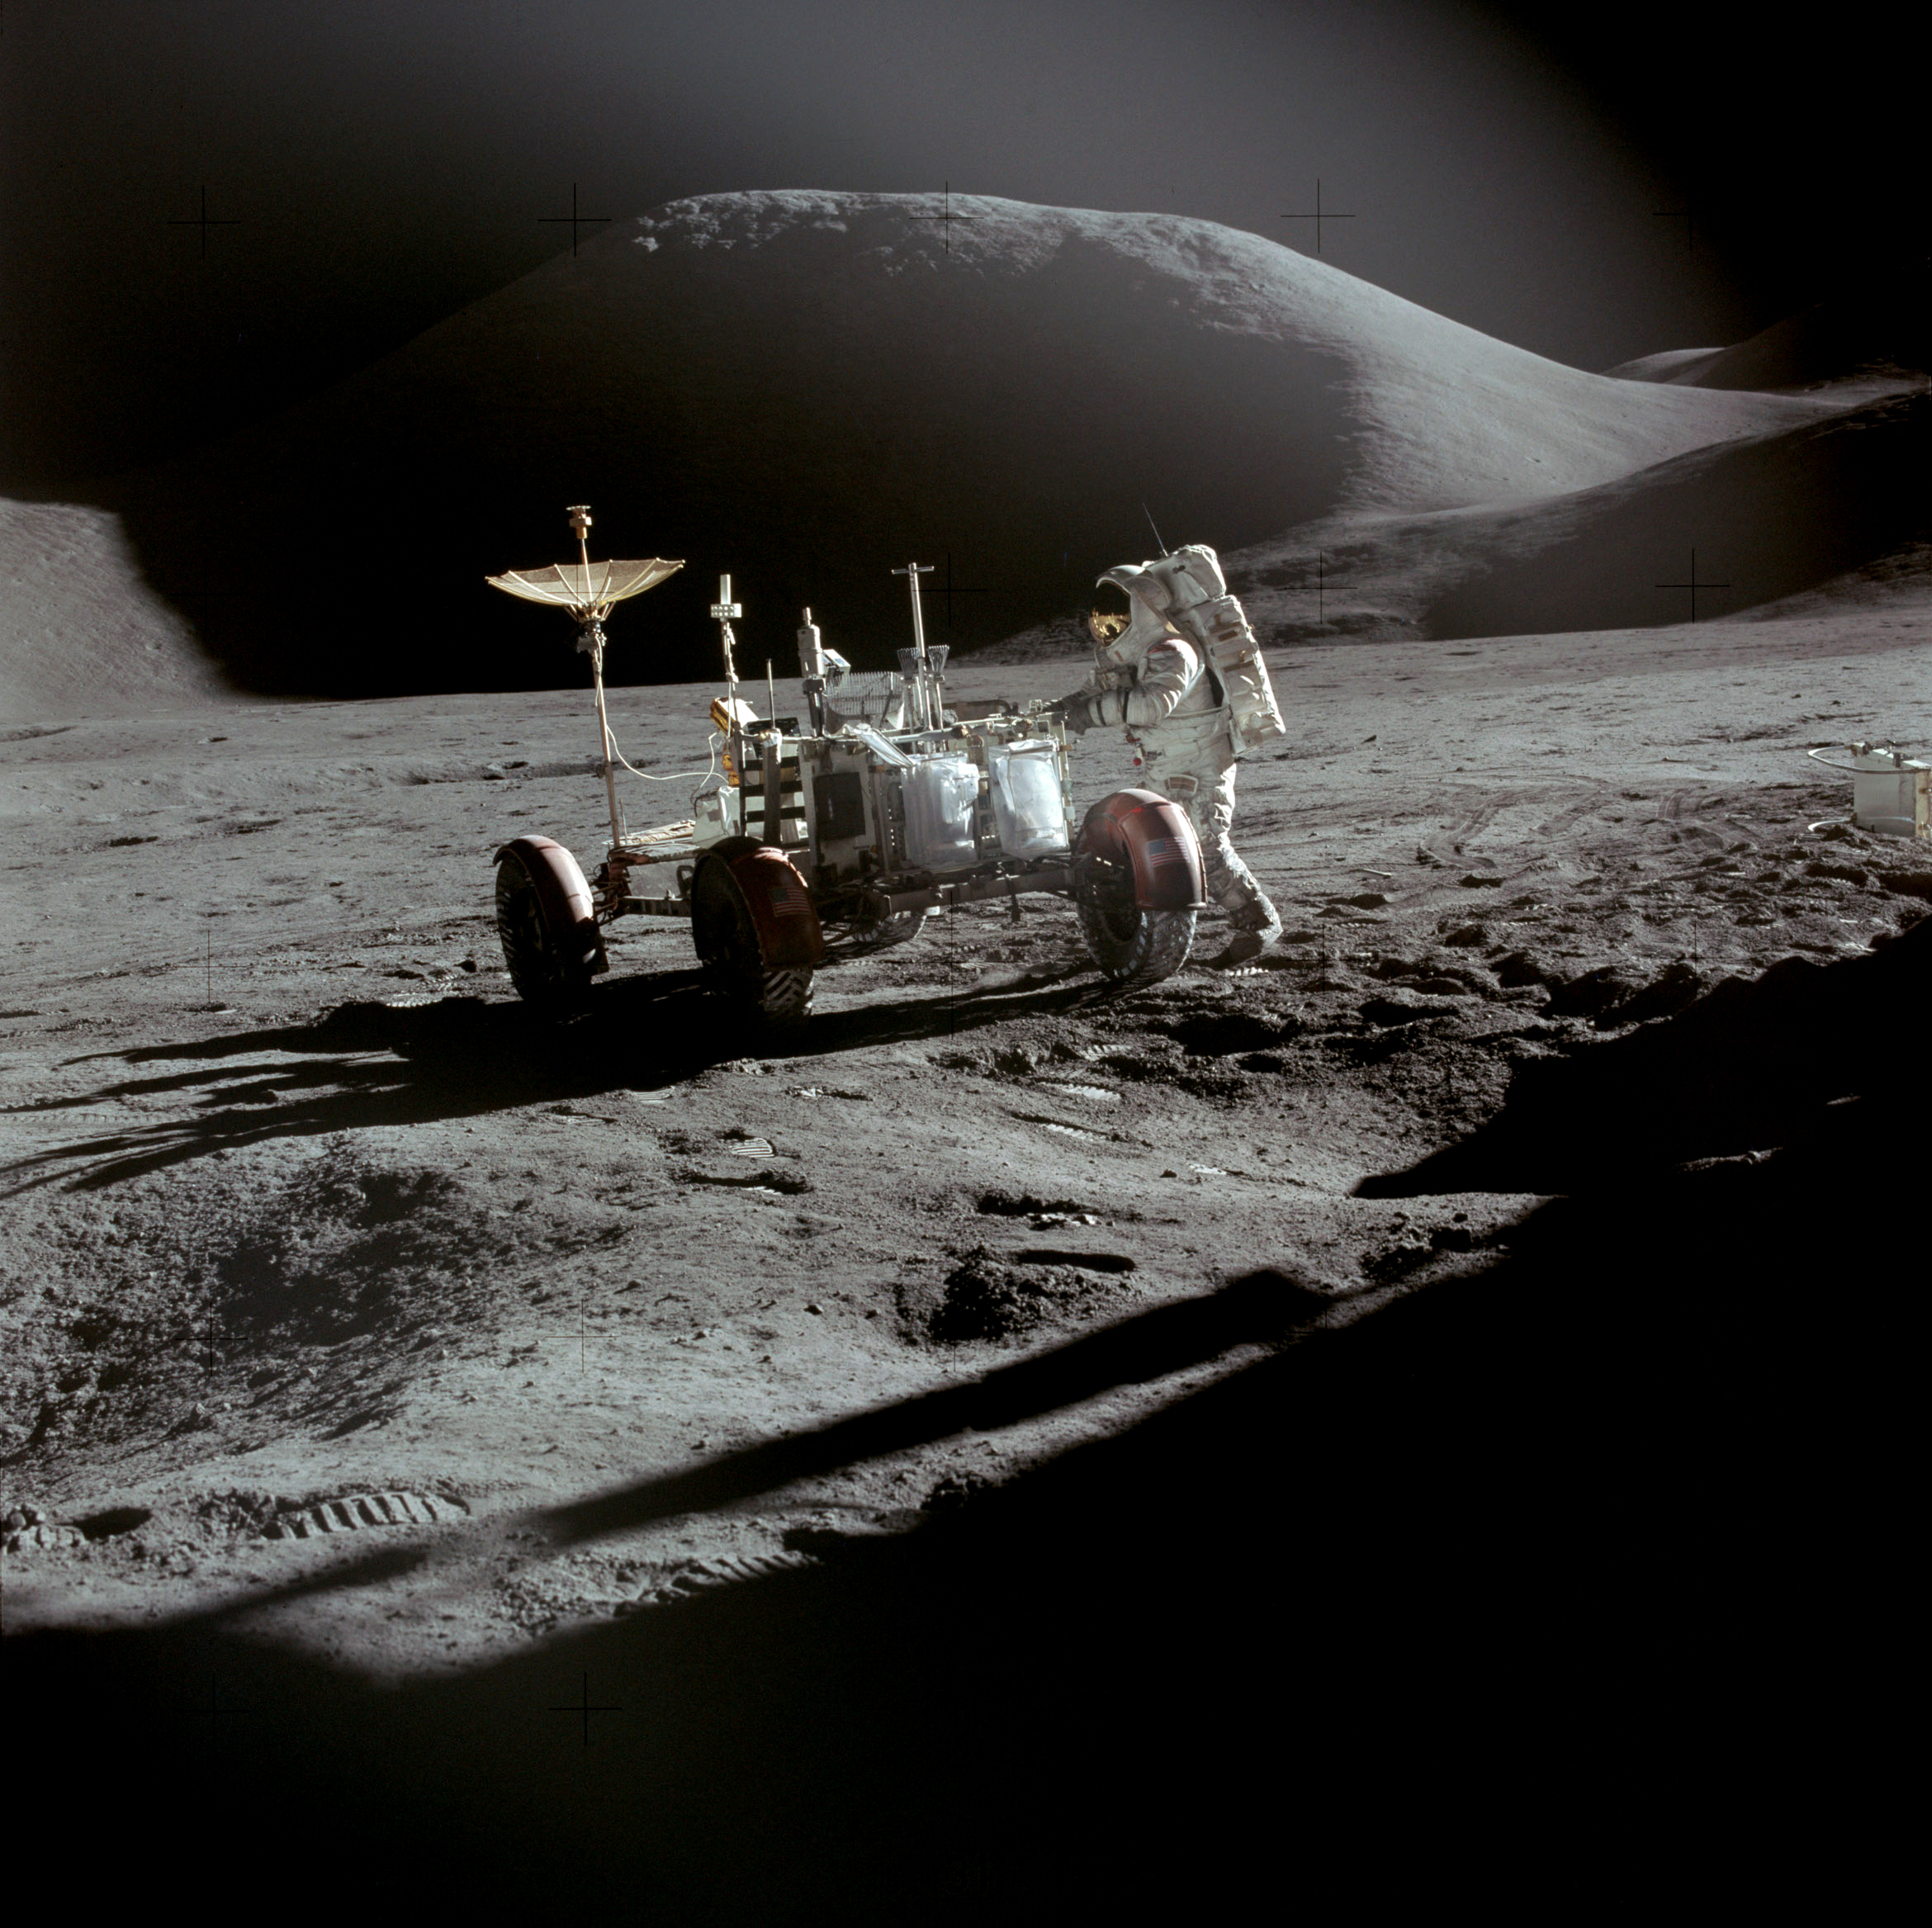 Apollo 15 Rover, Irwin